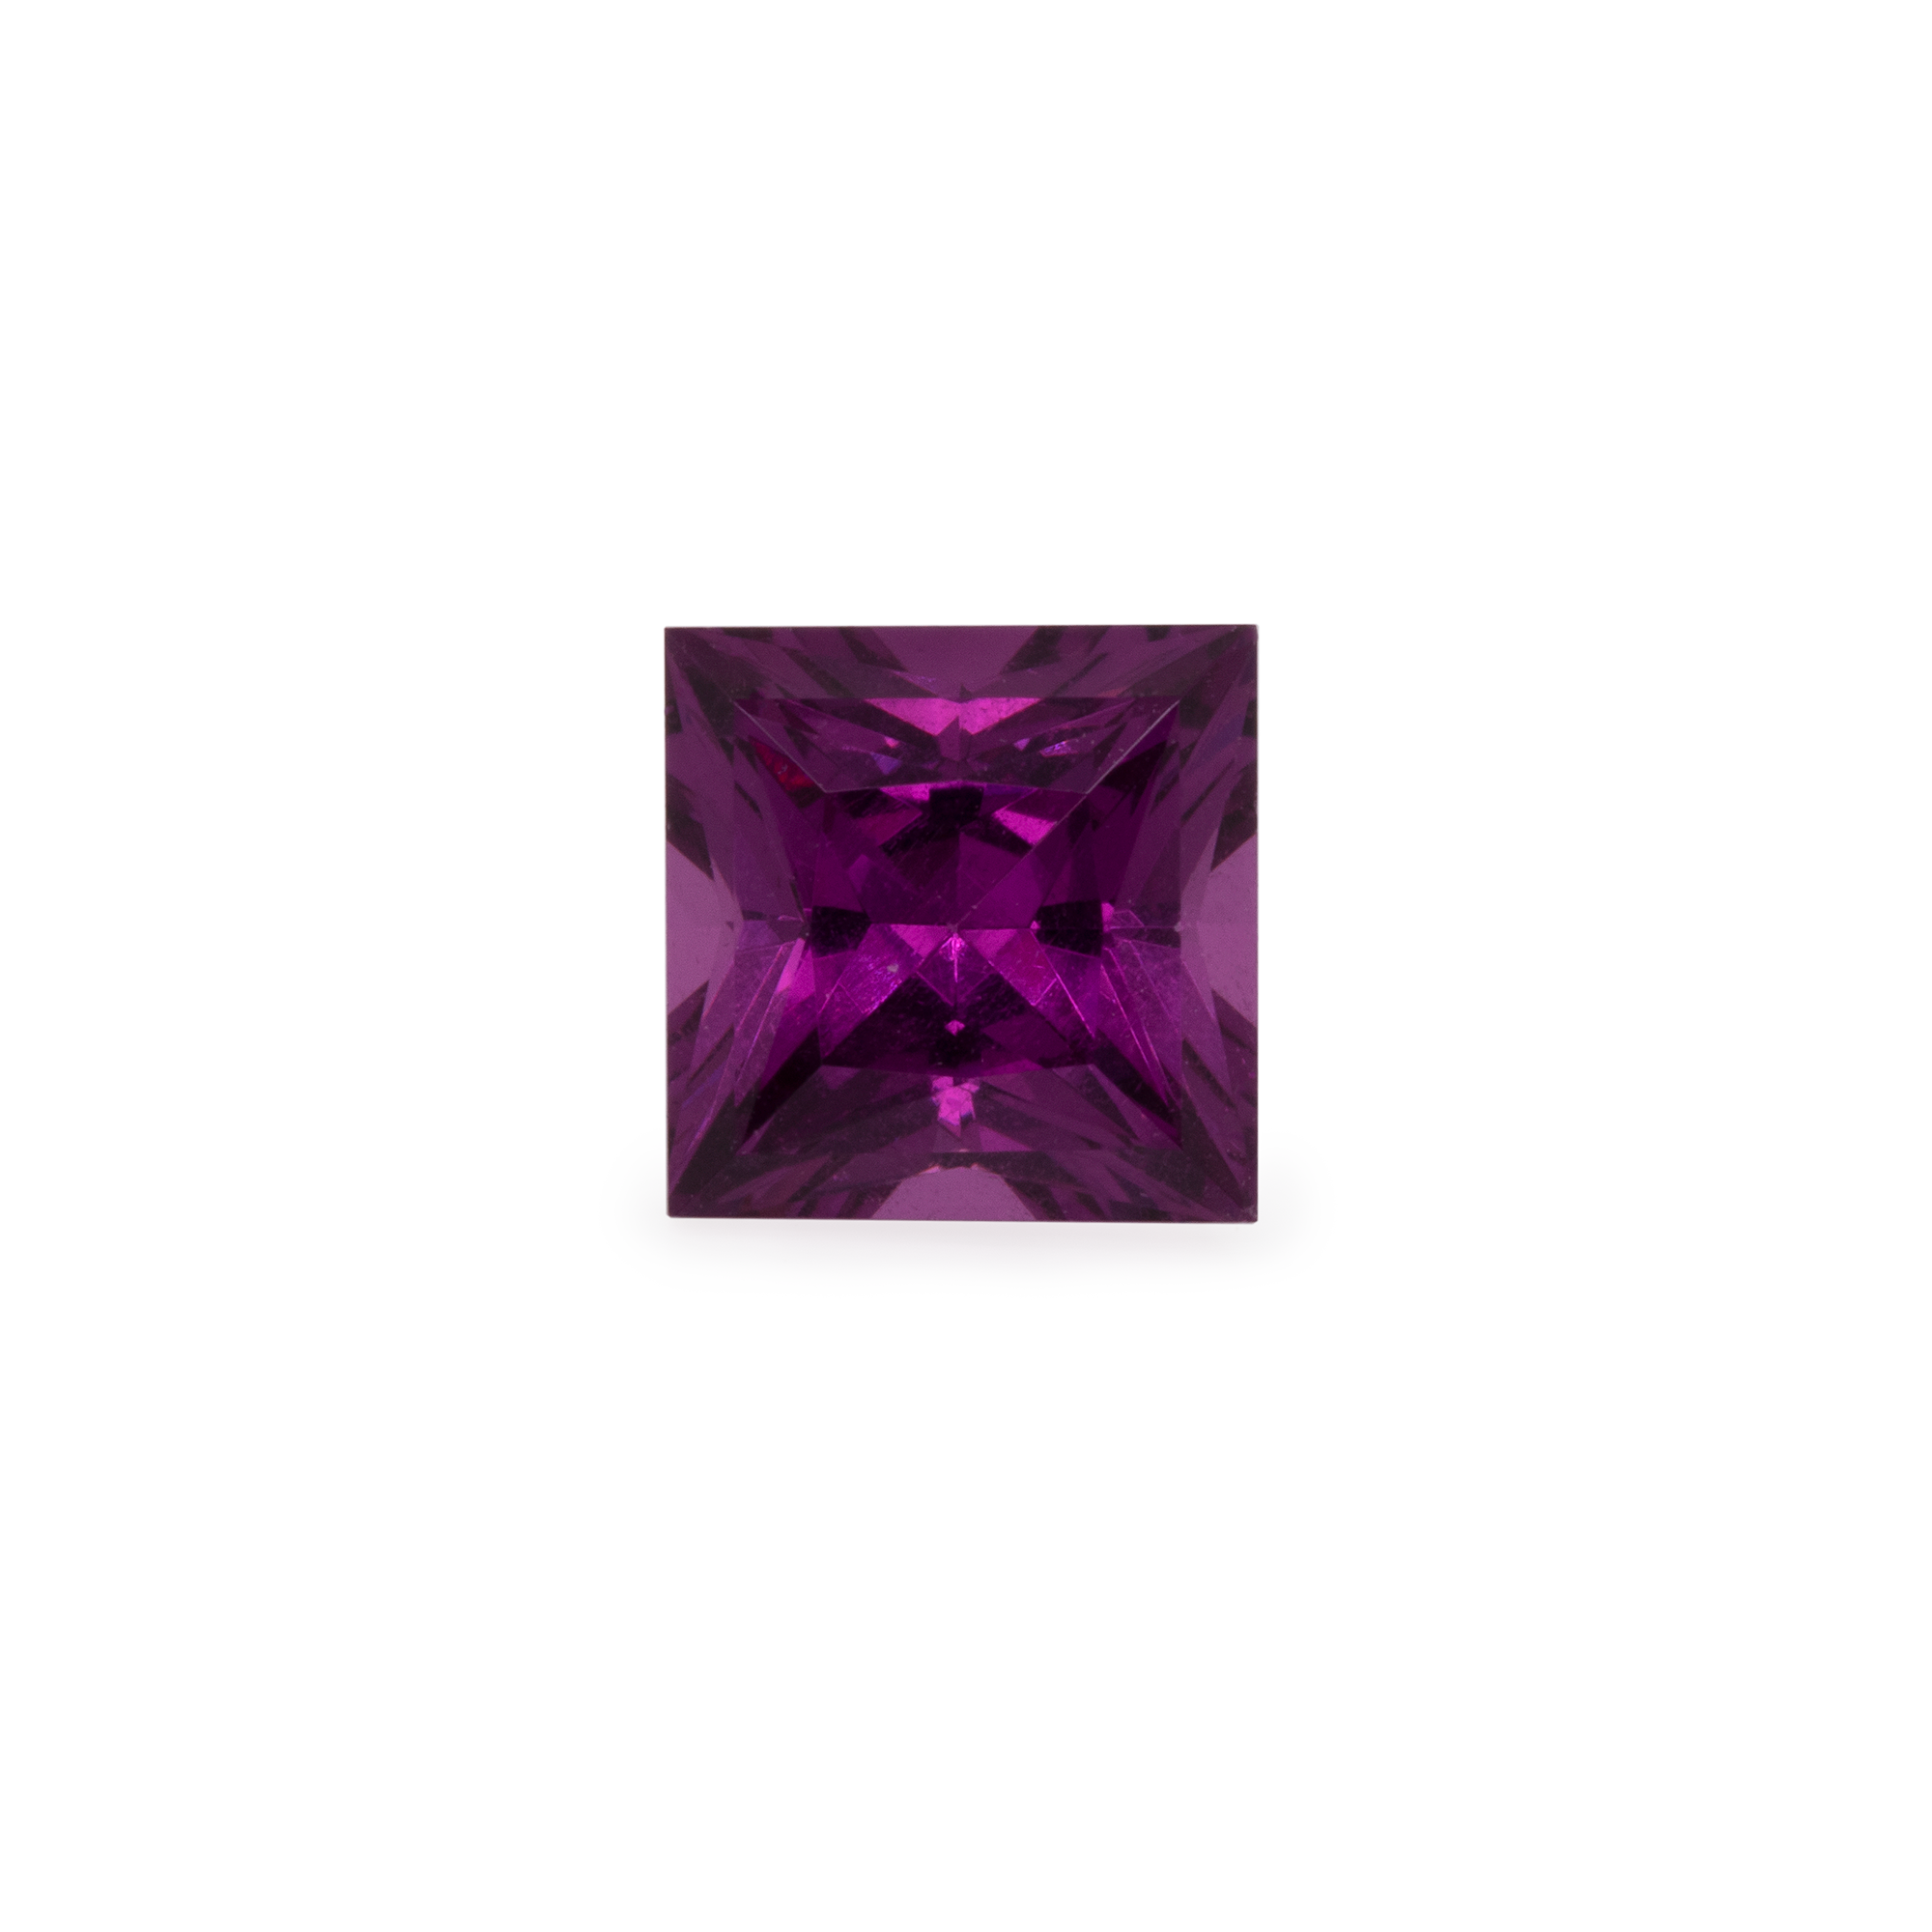 Royal Purple Garnet - lila, rechteck, 5x5 mm, 0,77-0,83 cts, Nr. RP33001